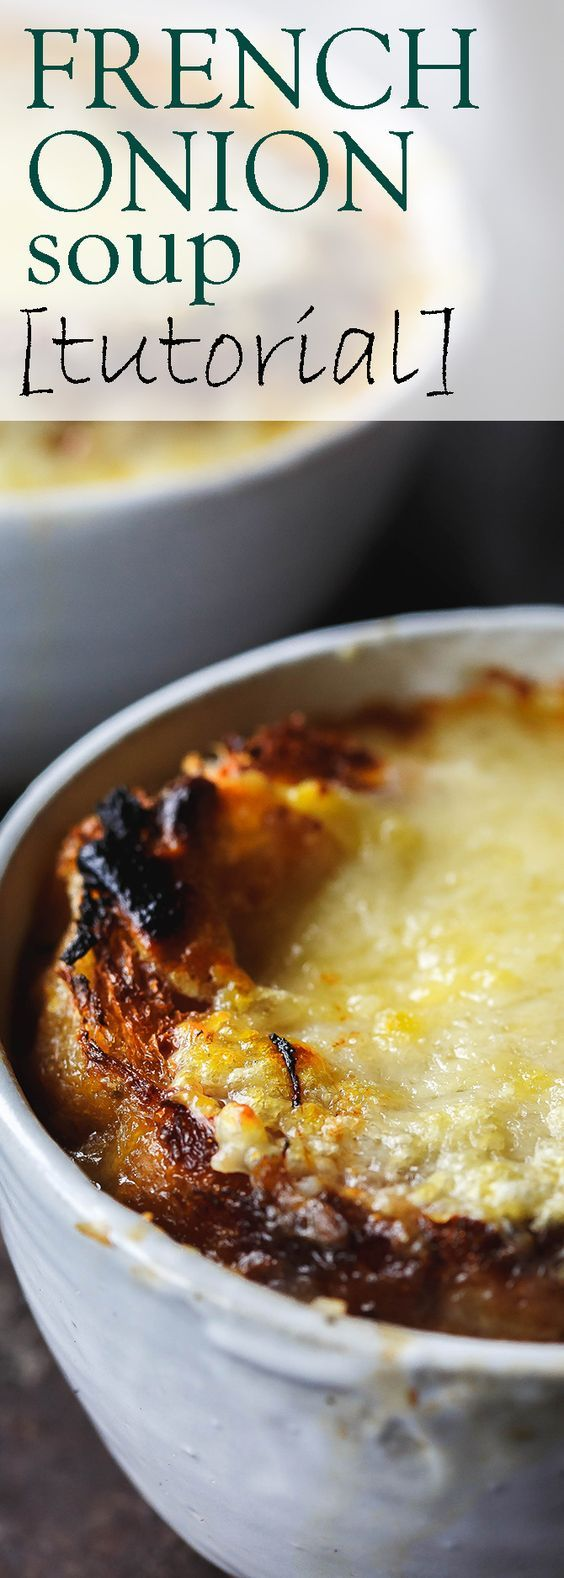 The BEST French Onion Soup Recipe (tutorial) | The Mediterranean Dish…